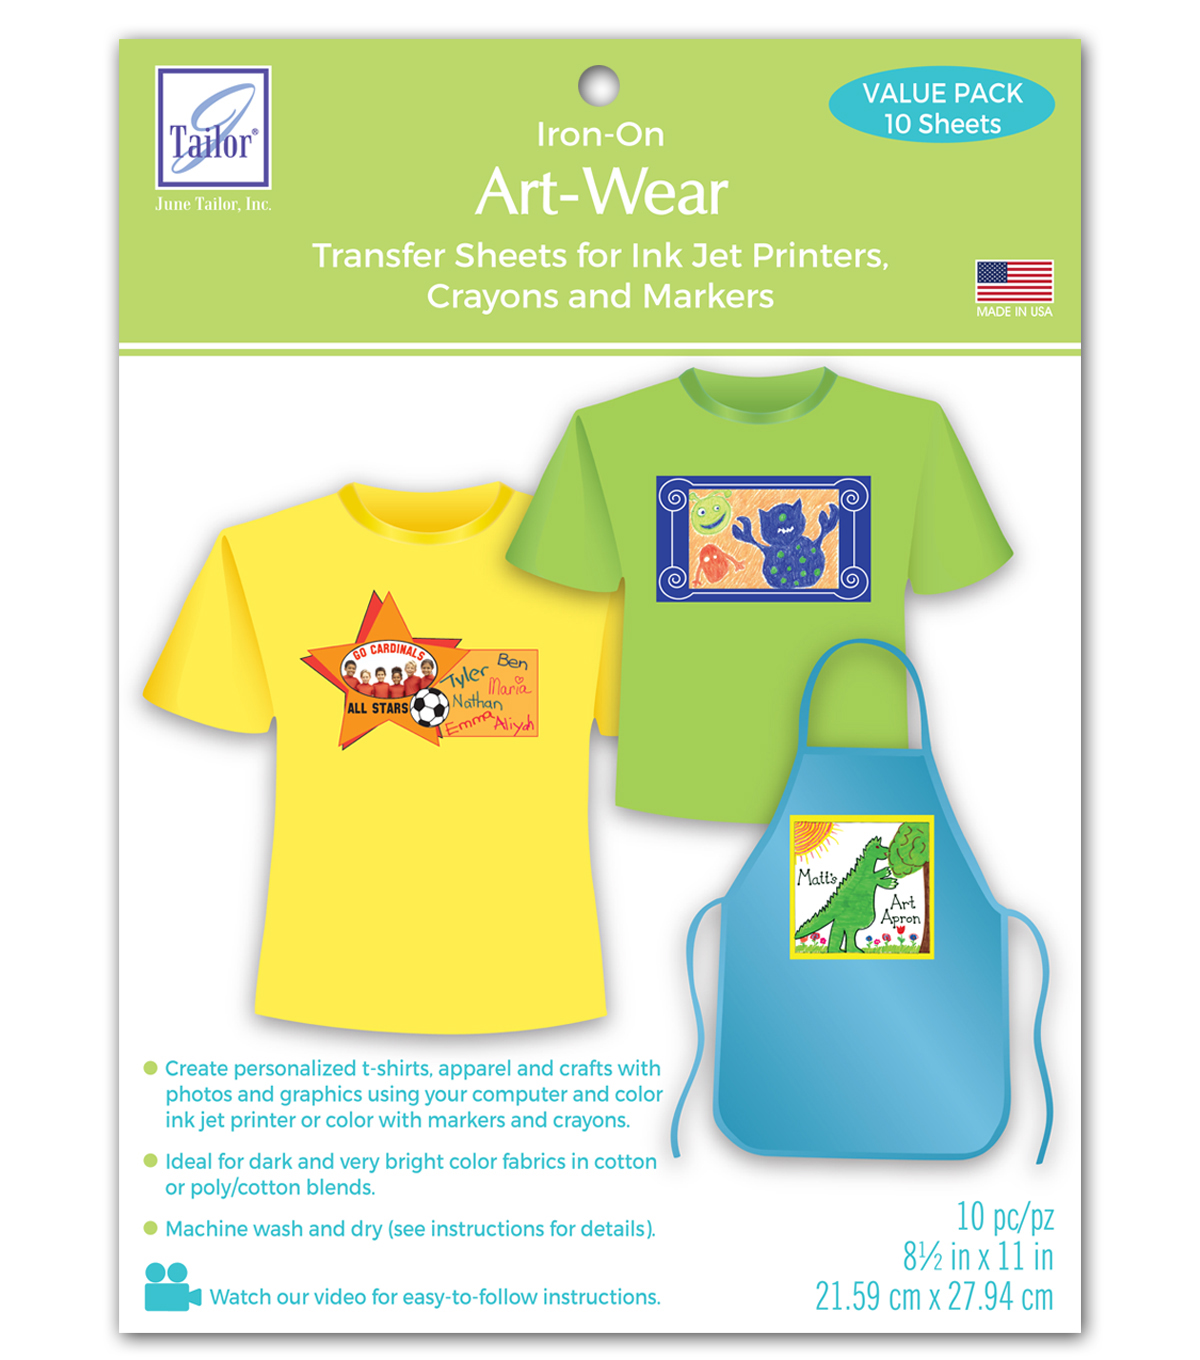 Iron On Art-Wear Transfer Sheets for Inkjet Printers Value Pack